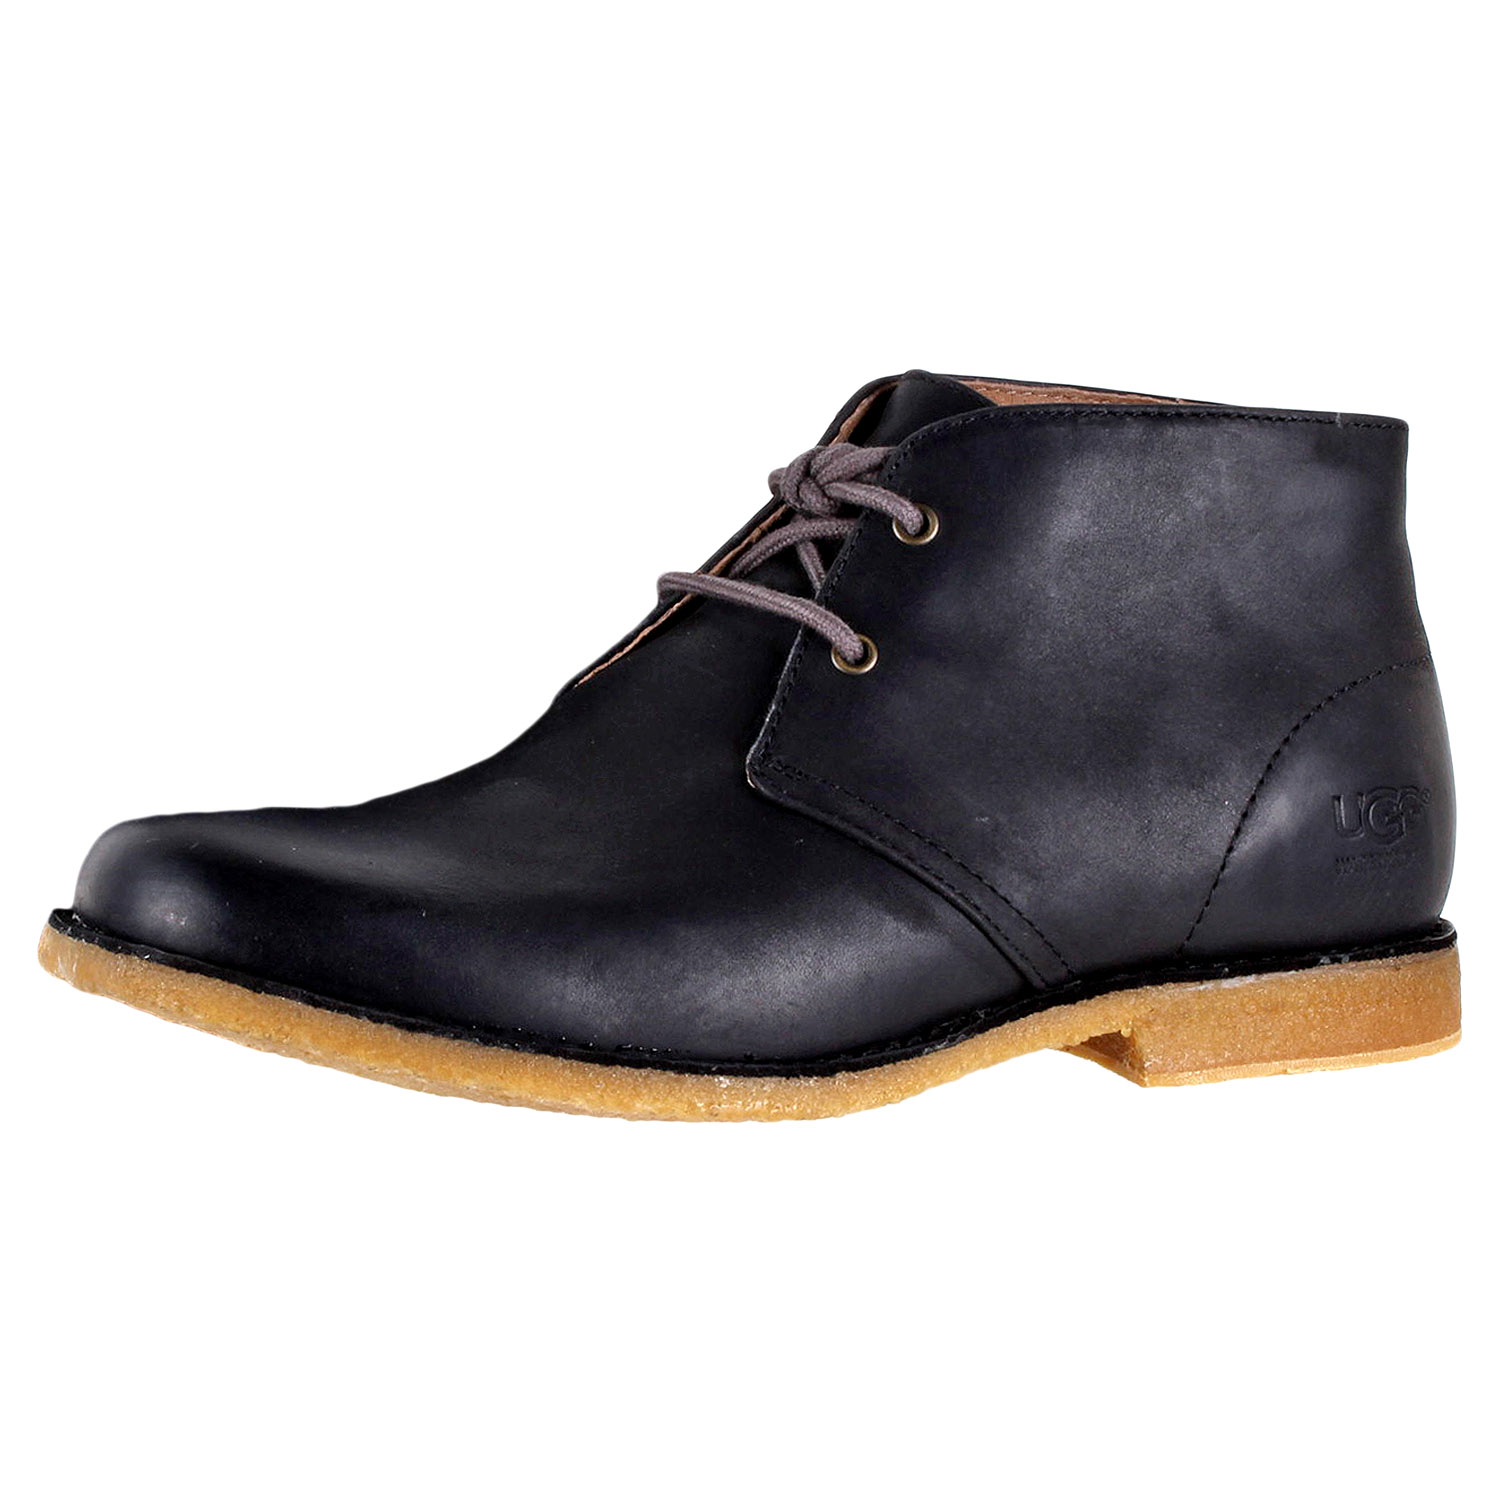 b0560b6df5f Details about UGG Men's Leighton WP Chukka 1017272 Boot Shoes